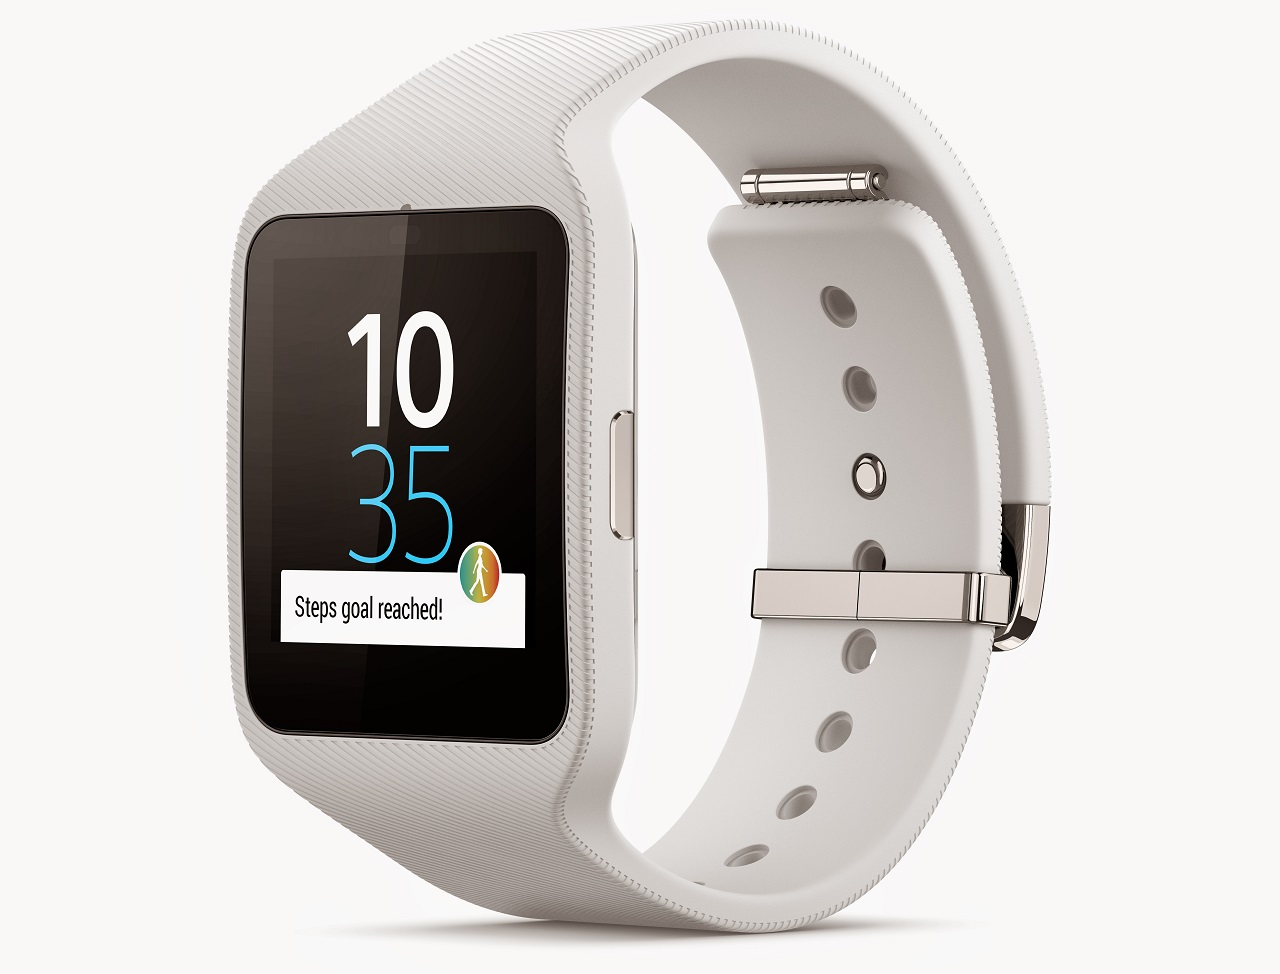 Sony Smartwatch 4 Release Expected to Happen in November 2015